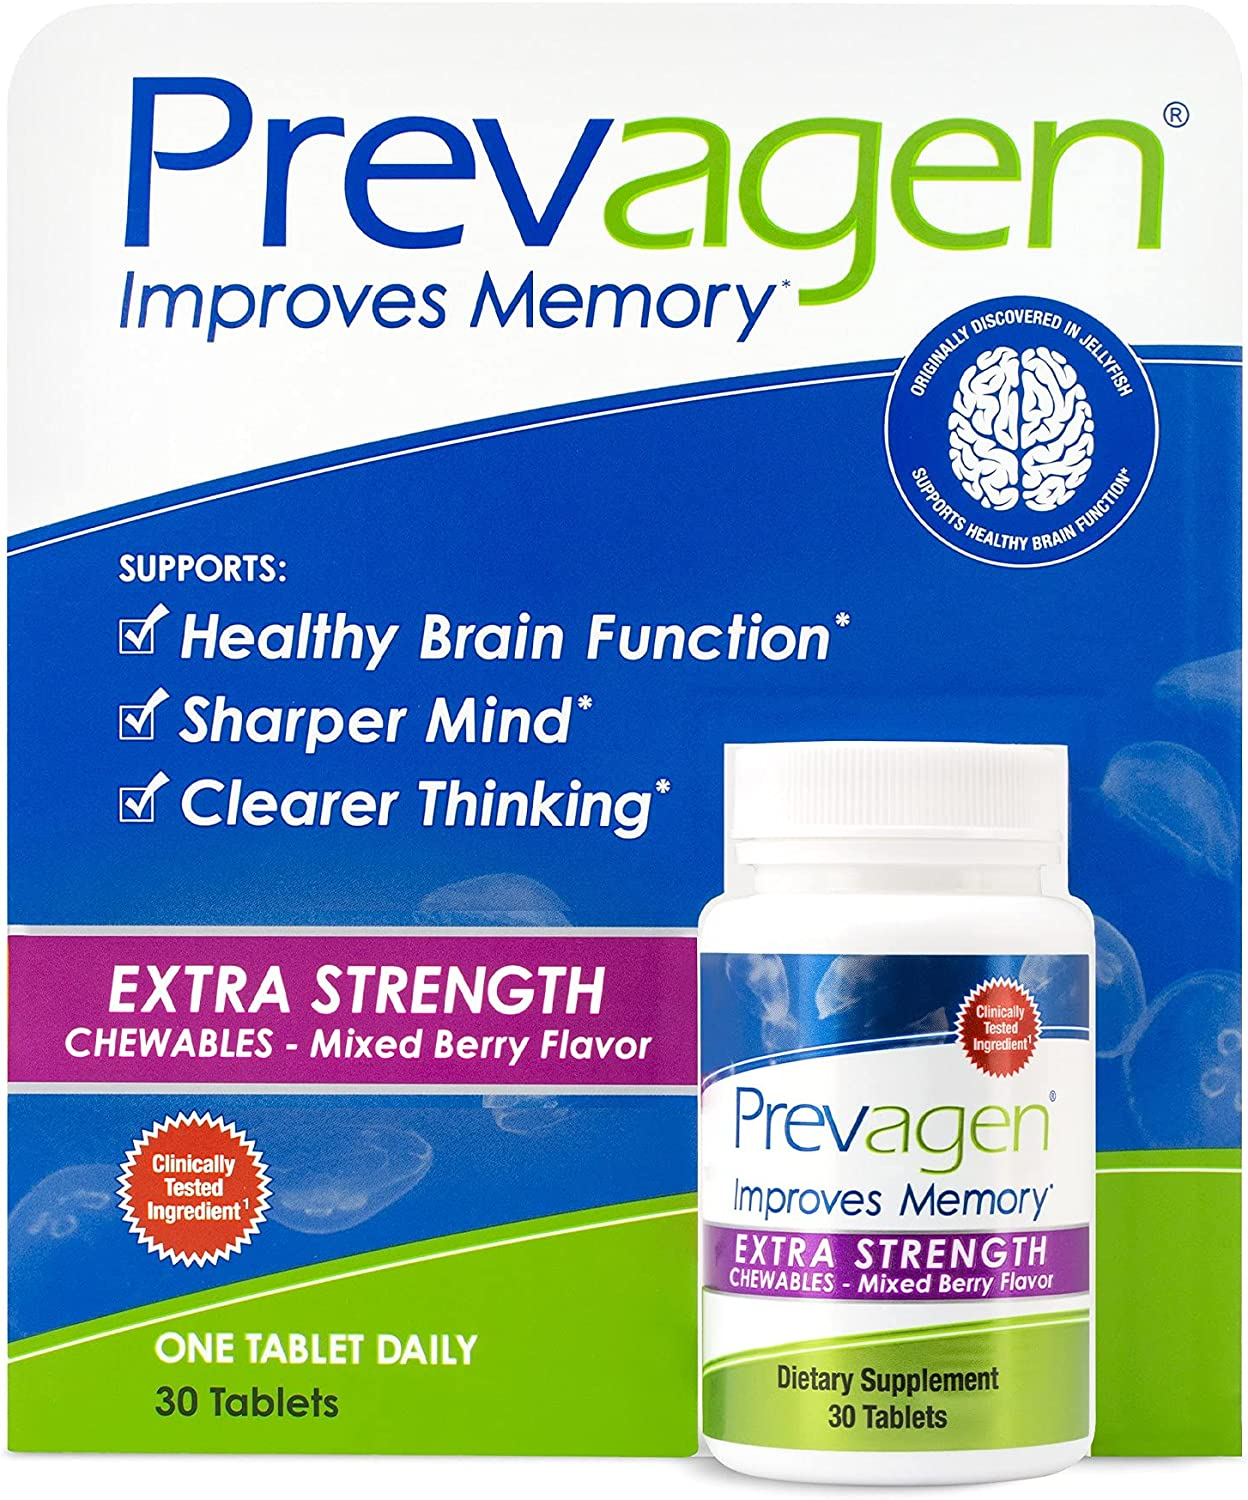 Prevagen Improves Memory Oakland Mall - Extra Chewables Strength Mi 20mg 30 Max 64% OFF